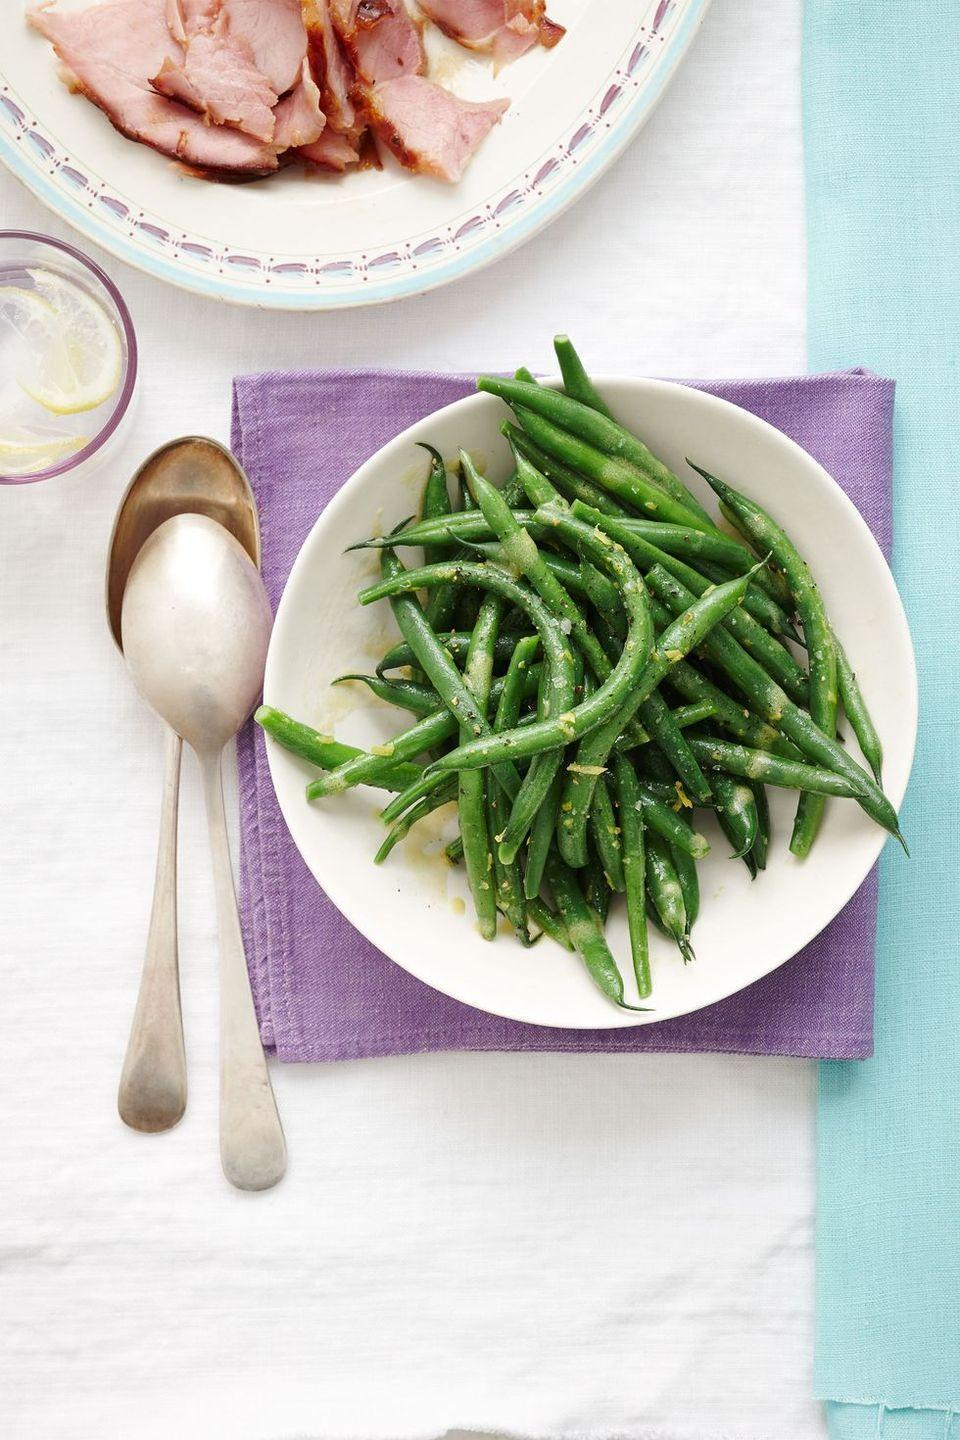 """<p>The secret to great green beans? Don't overcook them! Be sure they still taste fresh and maintain a little bit of crunch.</p><p><em><a href=""""https://www.goodhousekeeping.com/food-recipes/a15650/green-beans-lemon-vinaigrette-recipe-wdy0414/"""" rel=""""nofollow noopener"""" target=""""_blank"""" data-ylk=""""slk:Get the recipe for Green Beans with Lemon Vinaigrette »"""" class=""""link rapid-noclick-resp"""">Get the recipe for Green Beans with Lemon Vinaigrette »</a></em></p>"""